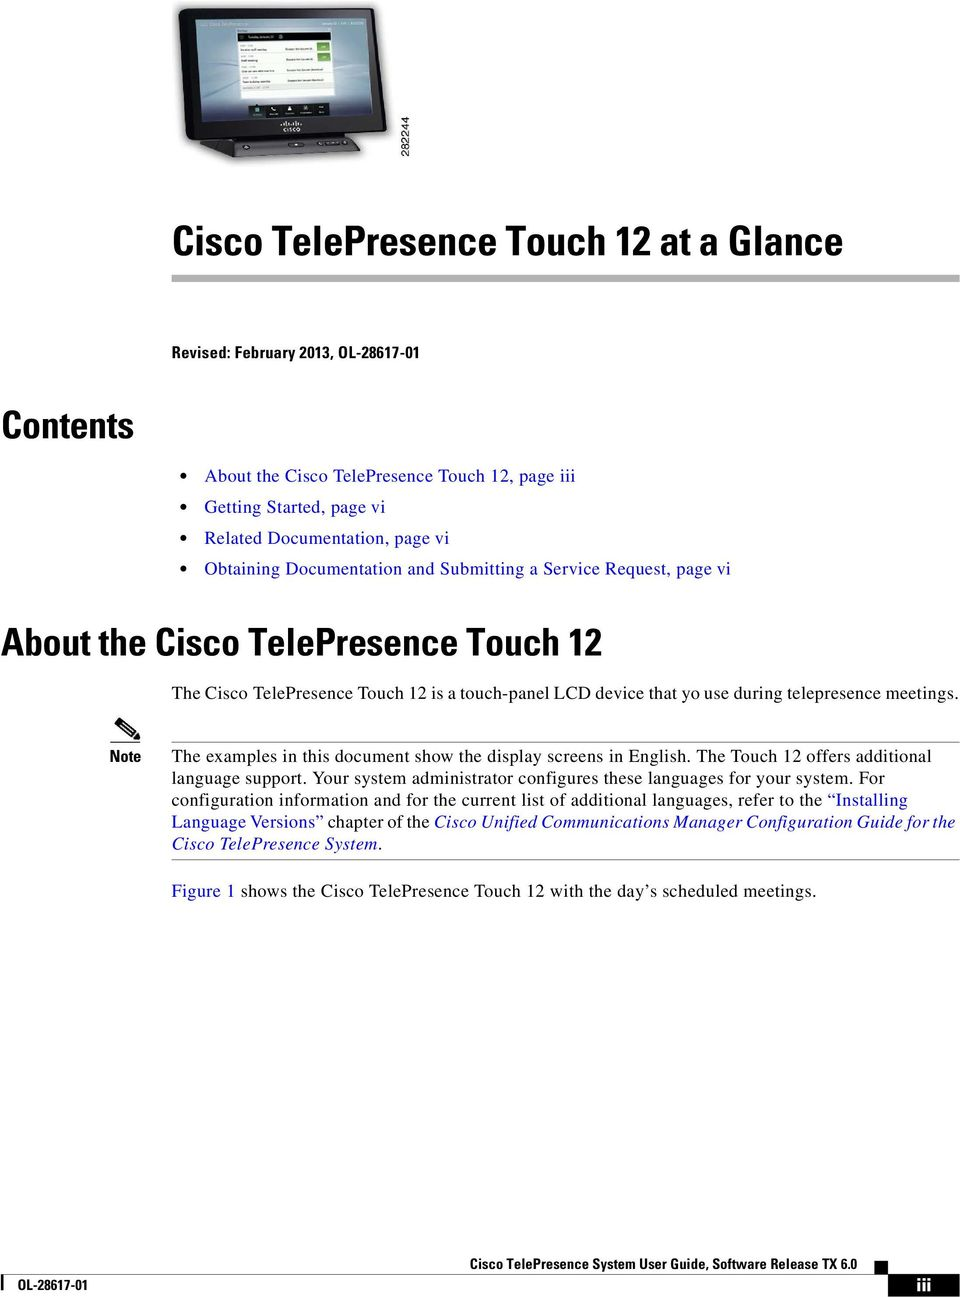 Note The examples in this document show the display screens in English. The Touch 12 offers additional language support. Your system administrator configures these languages for your system.